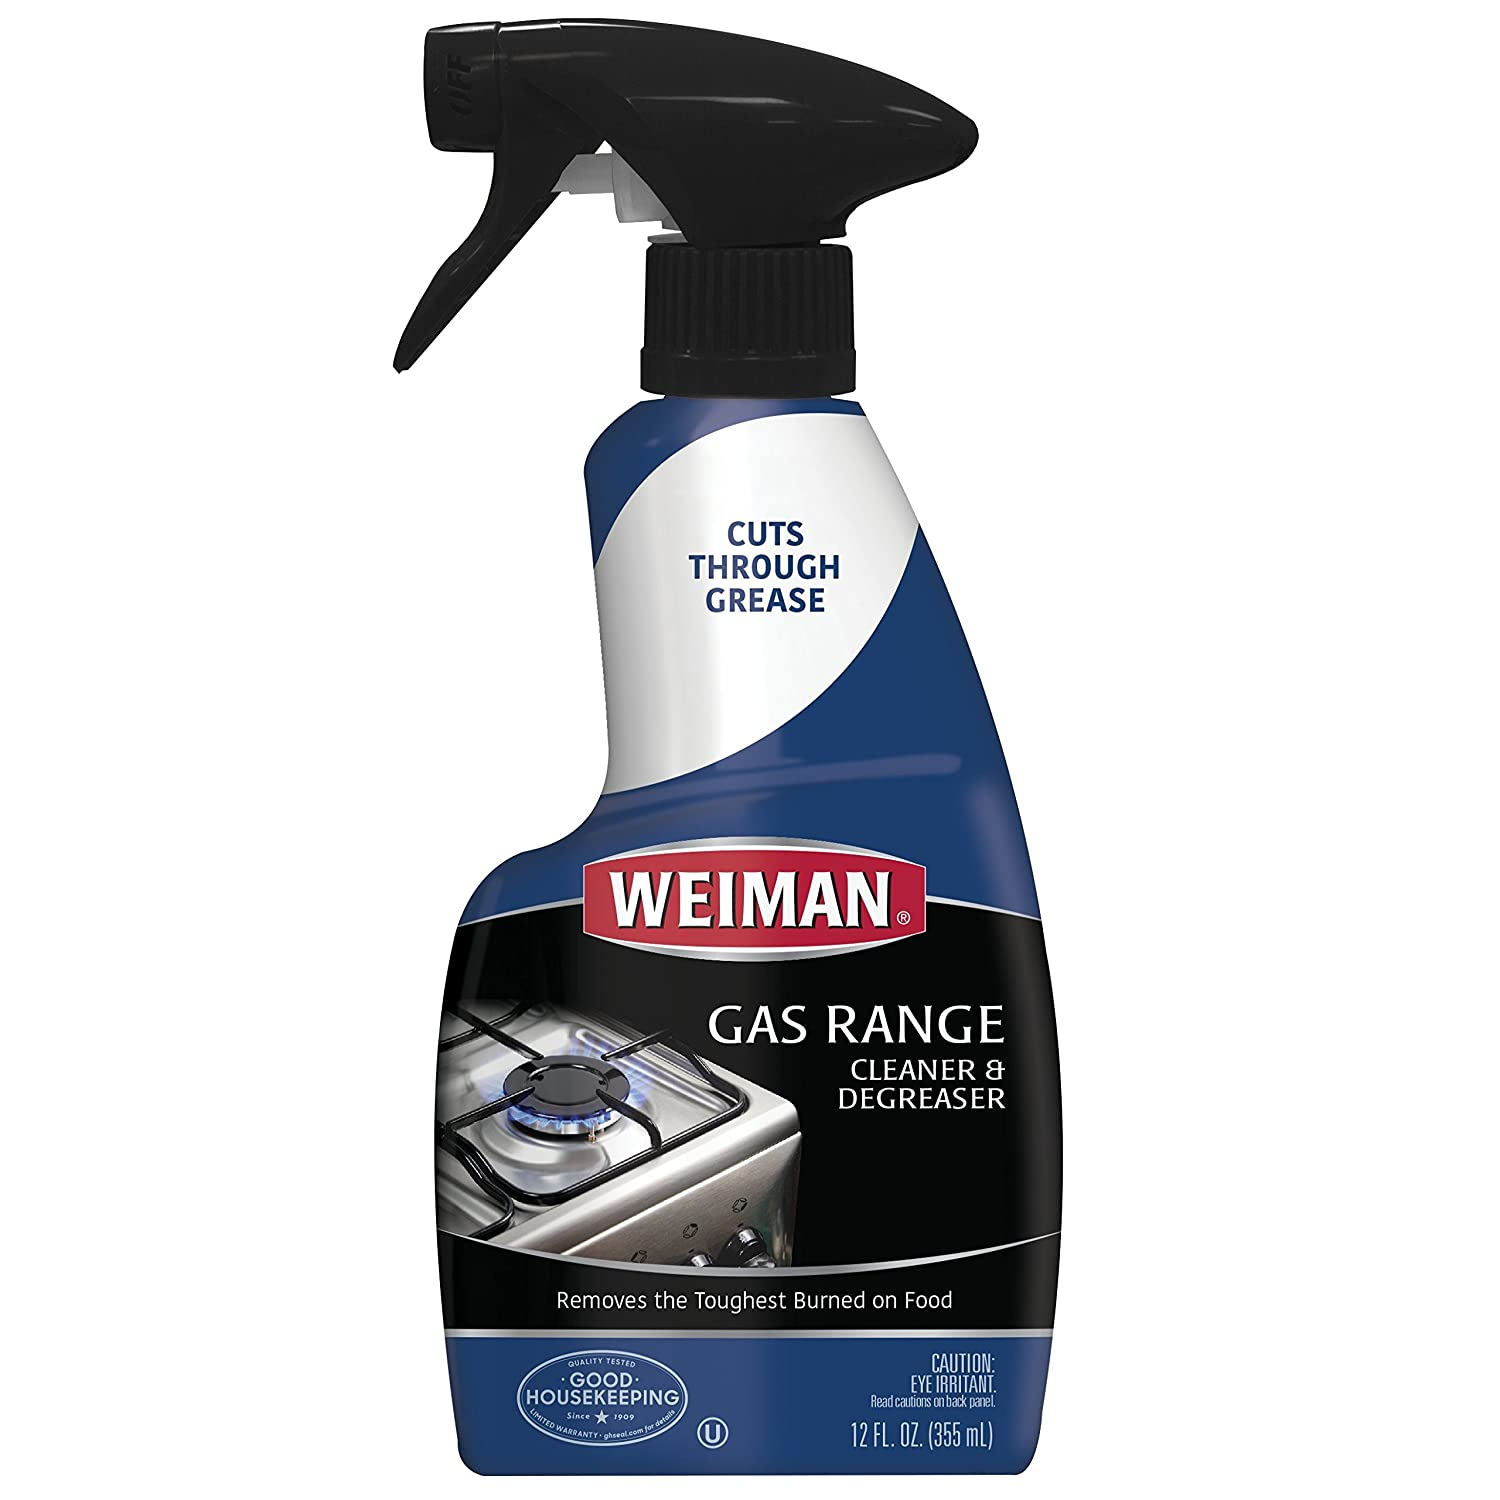 Weiman Gas Range Cleaner & Degreaser - Penetrate and Loosen Tough Grease and Burned-On Food - 12 Oz.